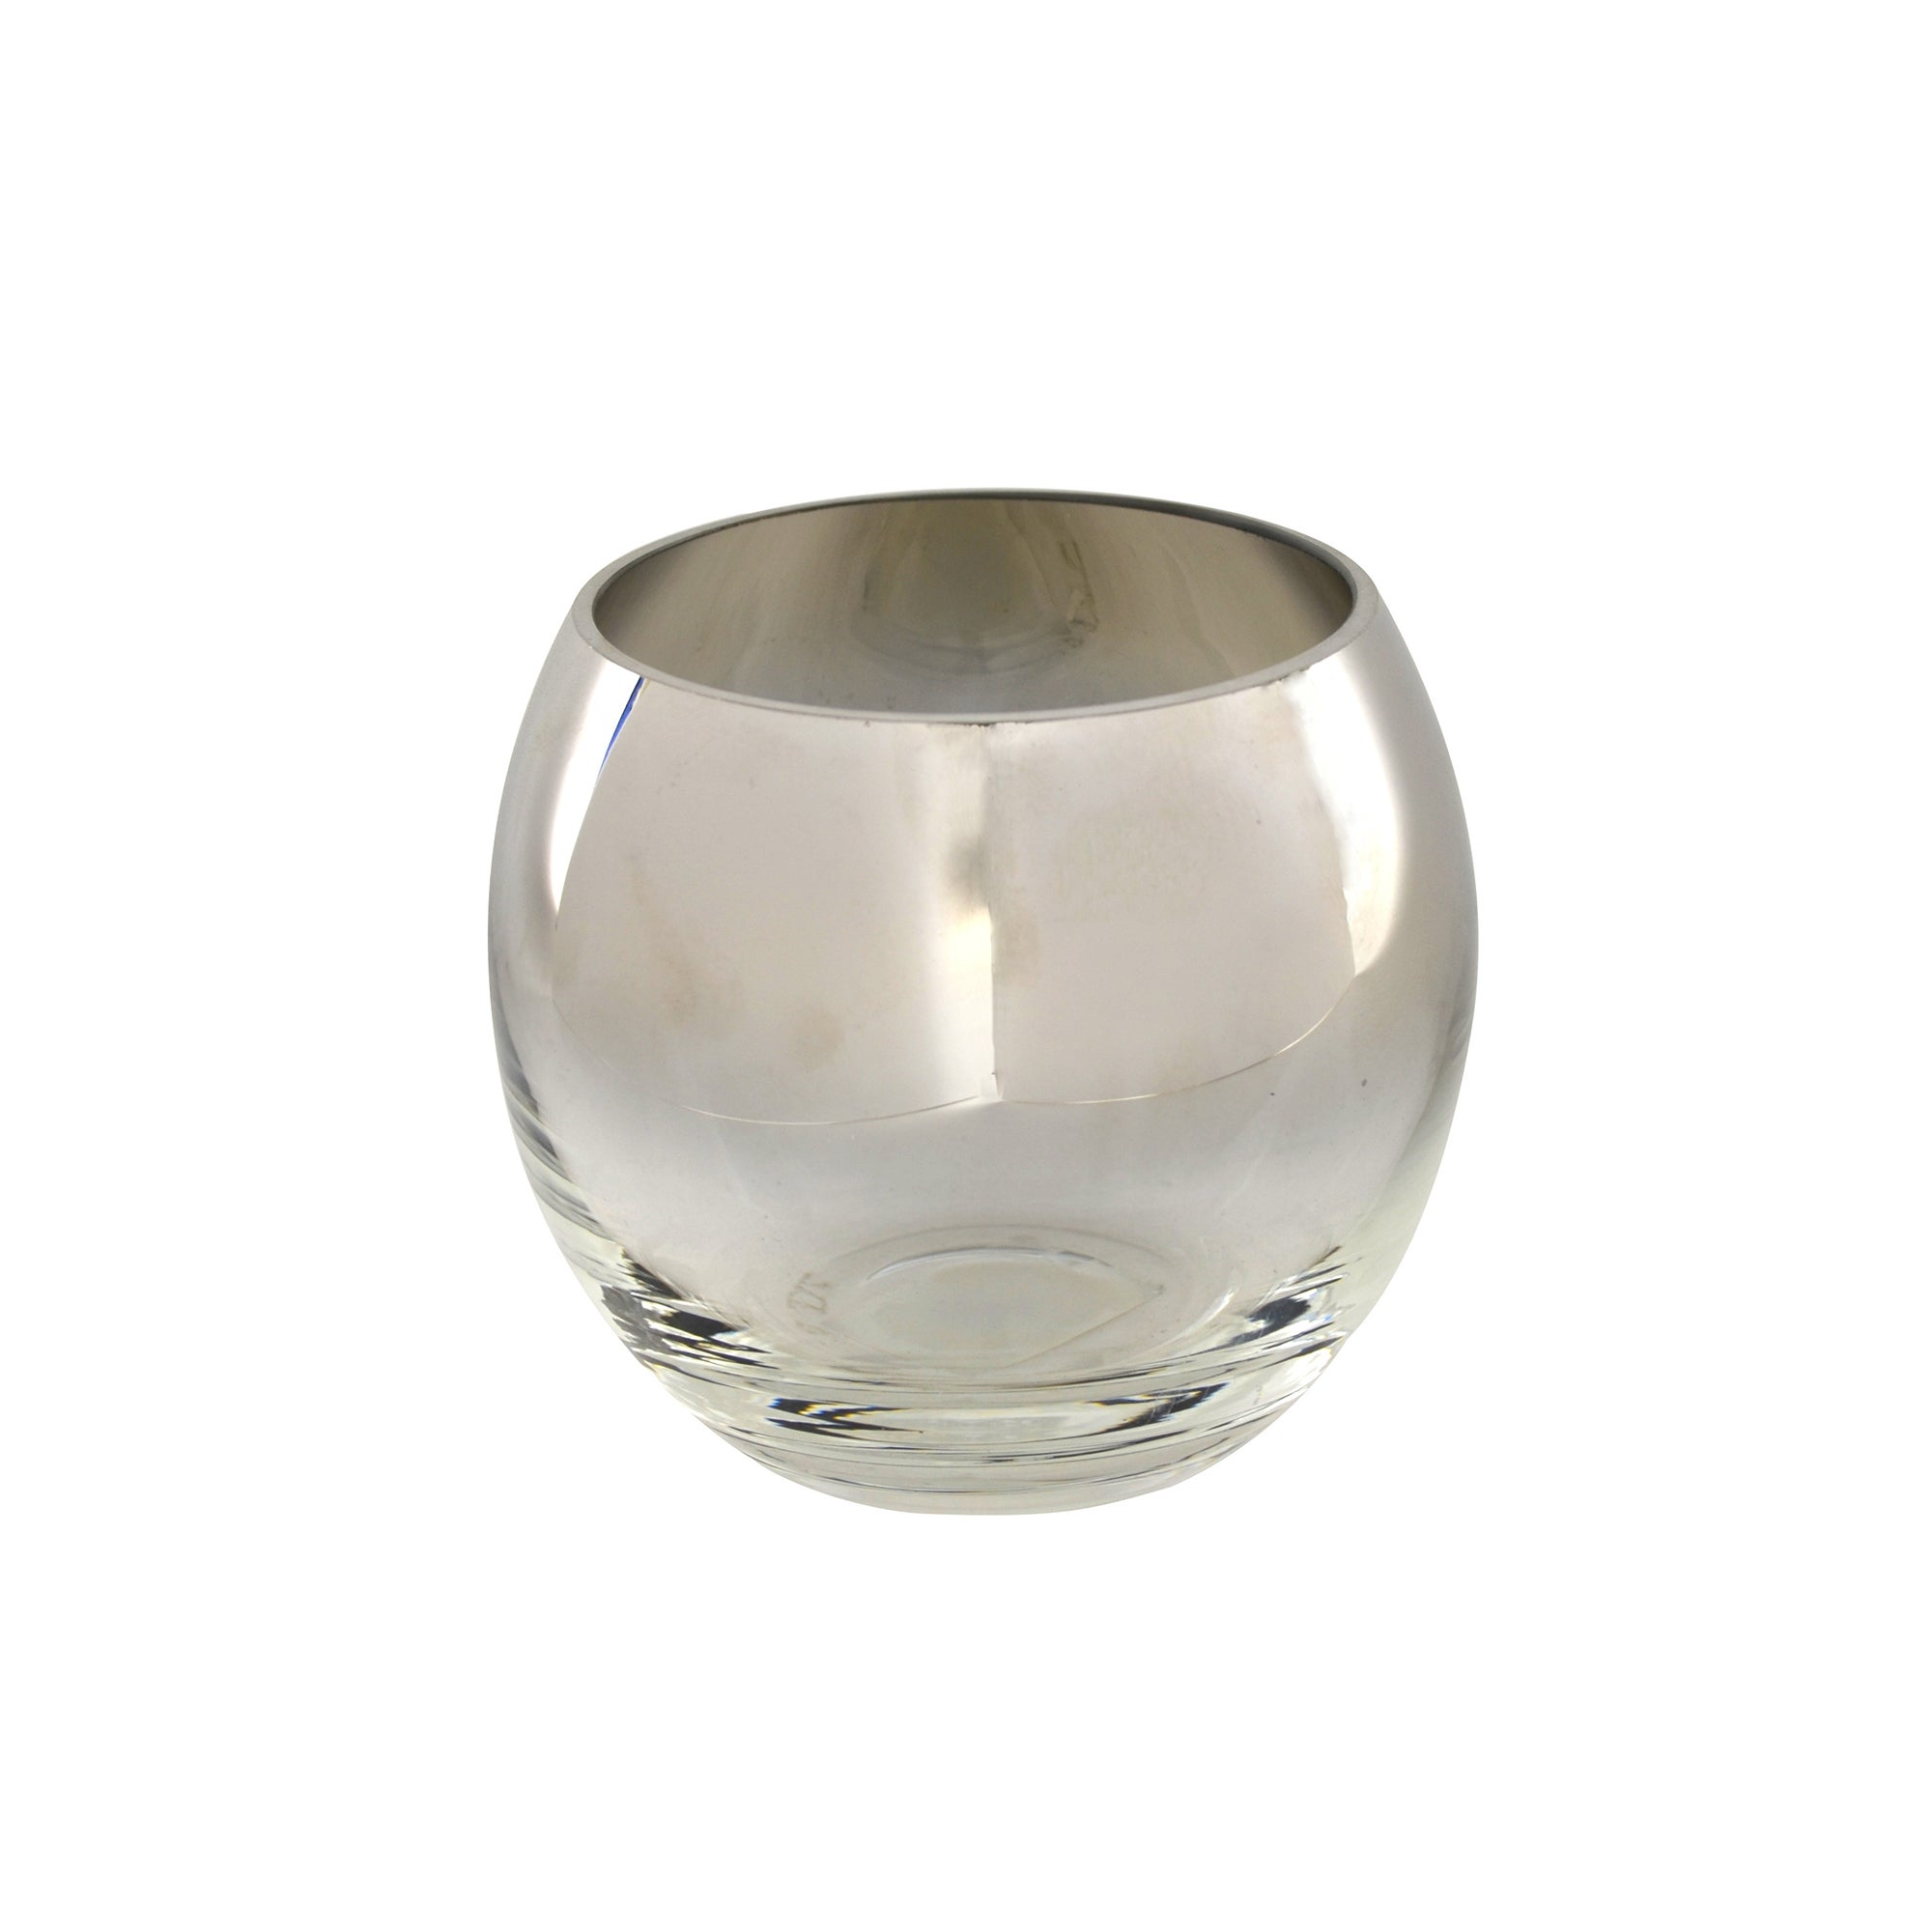 Photo of Hotel silver glass tea light holder silver